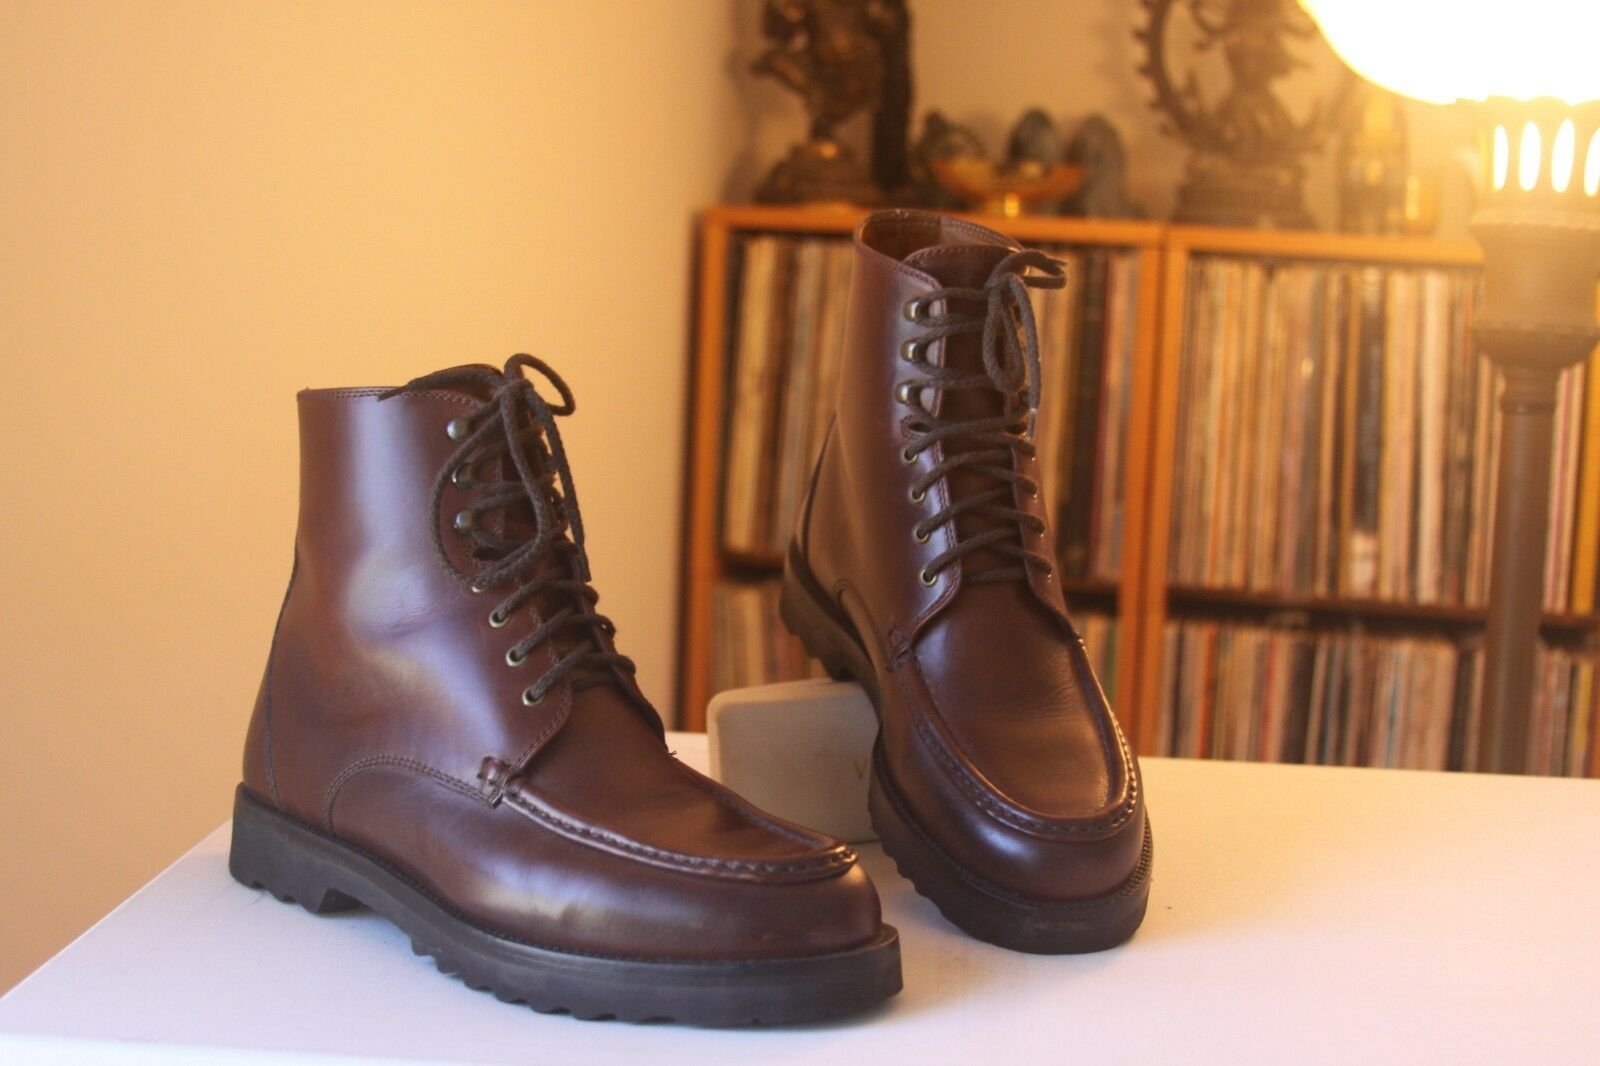 Cole Haan 1145 Brown Leather 7 1 2 Inches Tall Lace Up Boots Men's Size 8 D